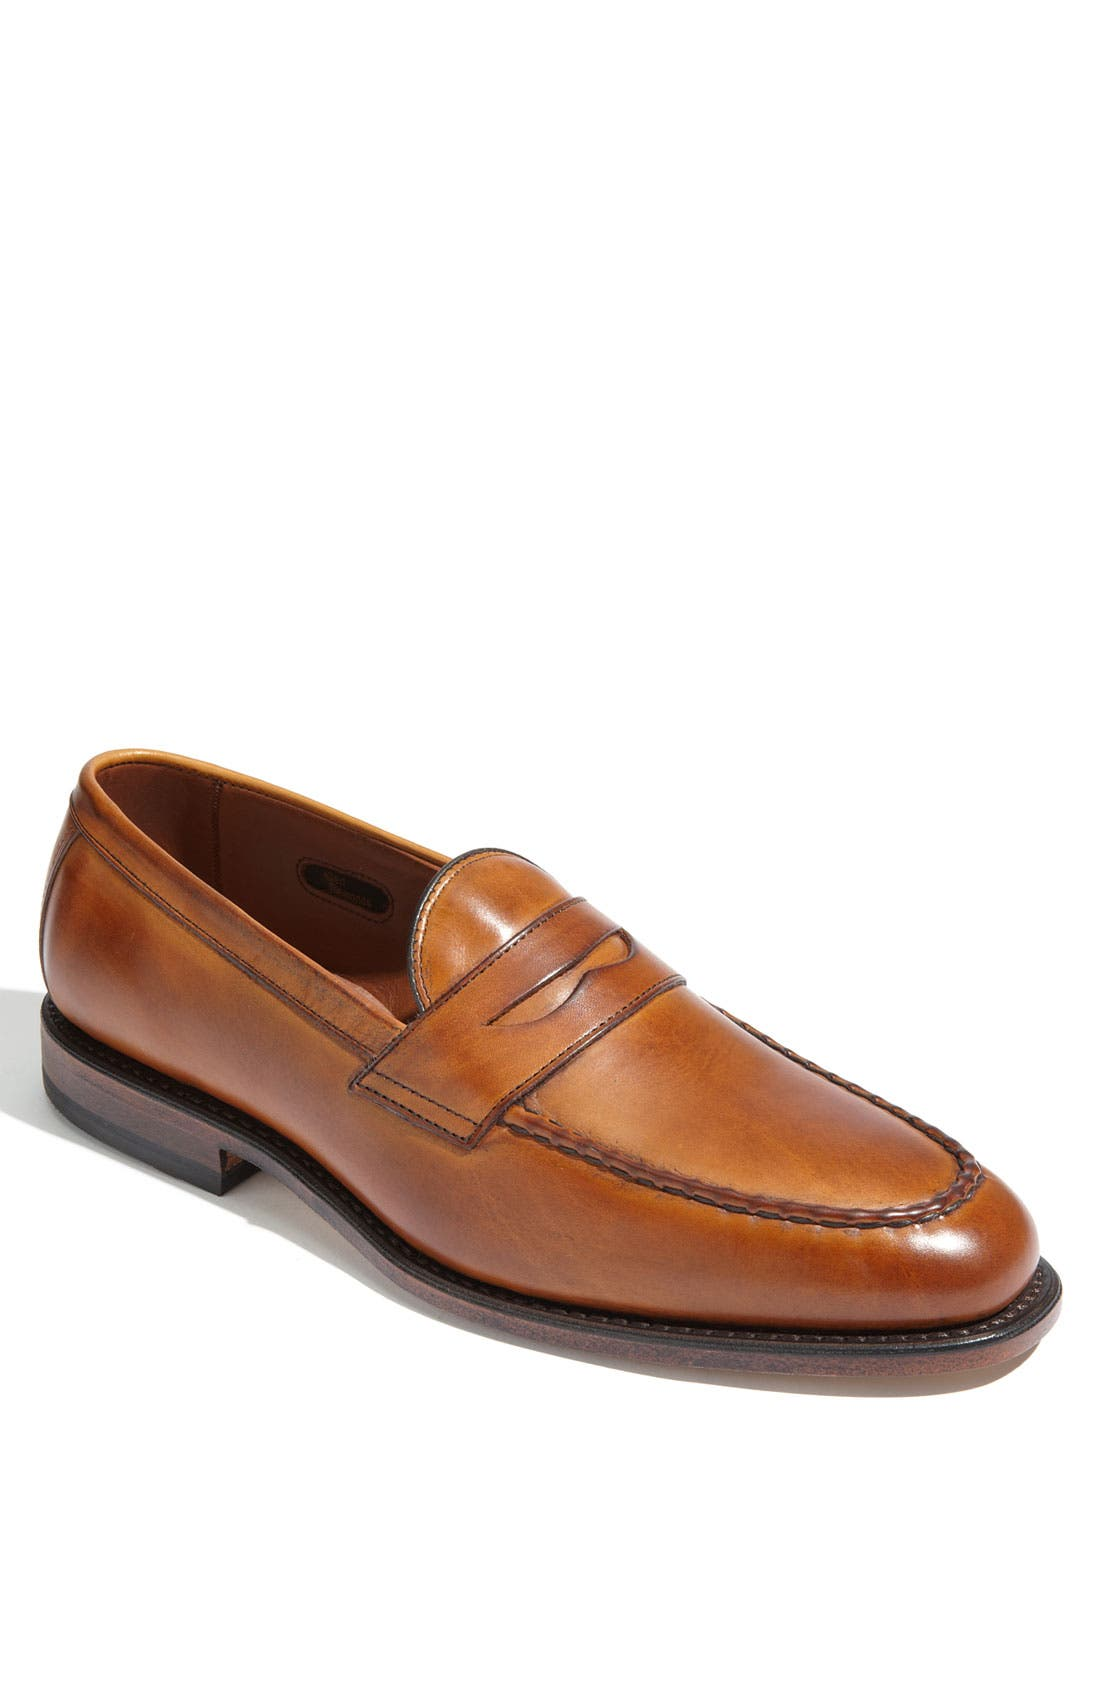 Alternate Image 1 Selected - Allen Edmonds 'McGraw' Penny Loafer (Online Only)